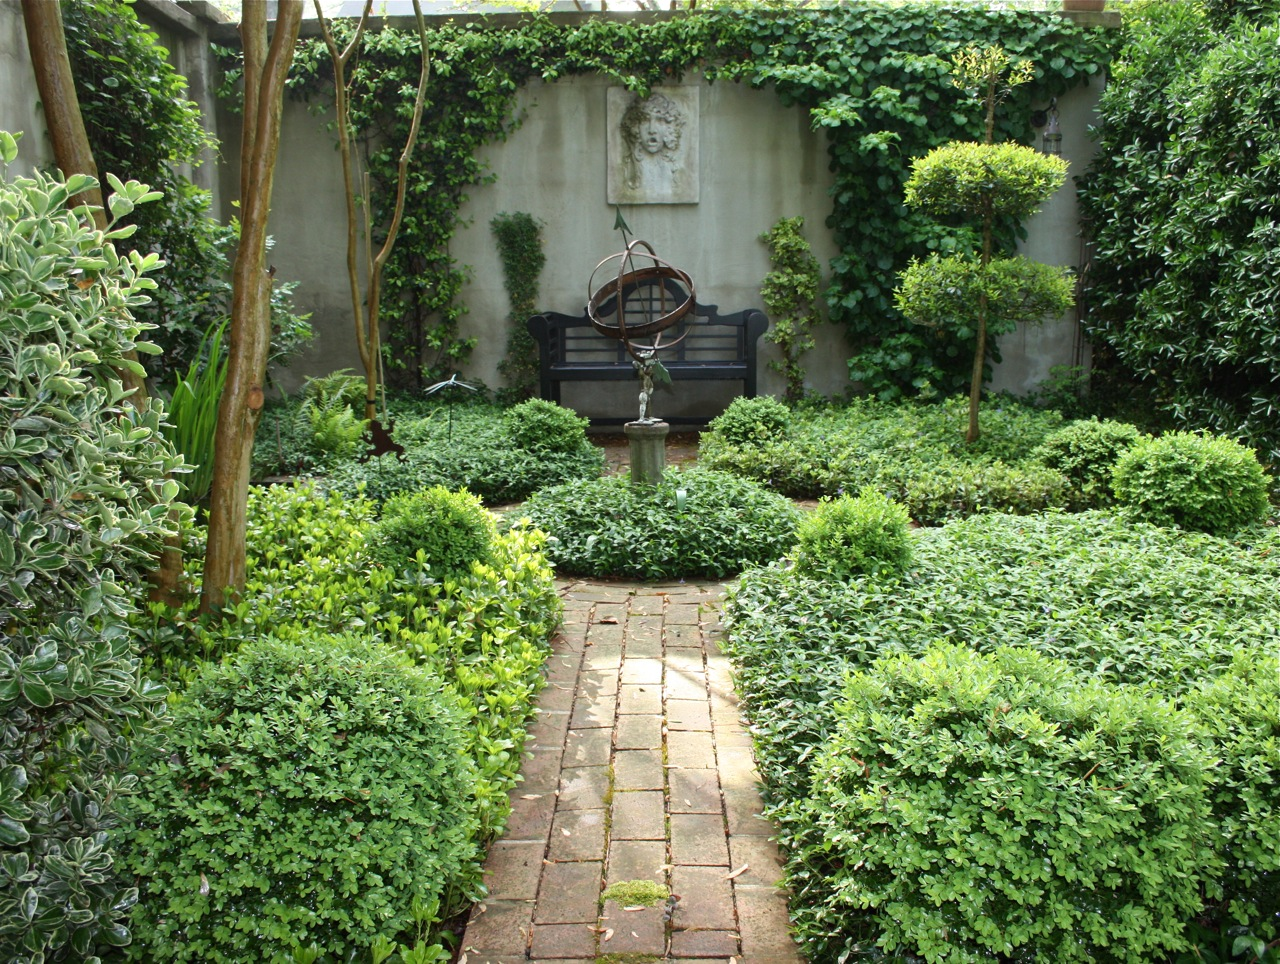 A curious gardener southern courtyard gardens for Garden design ideas